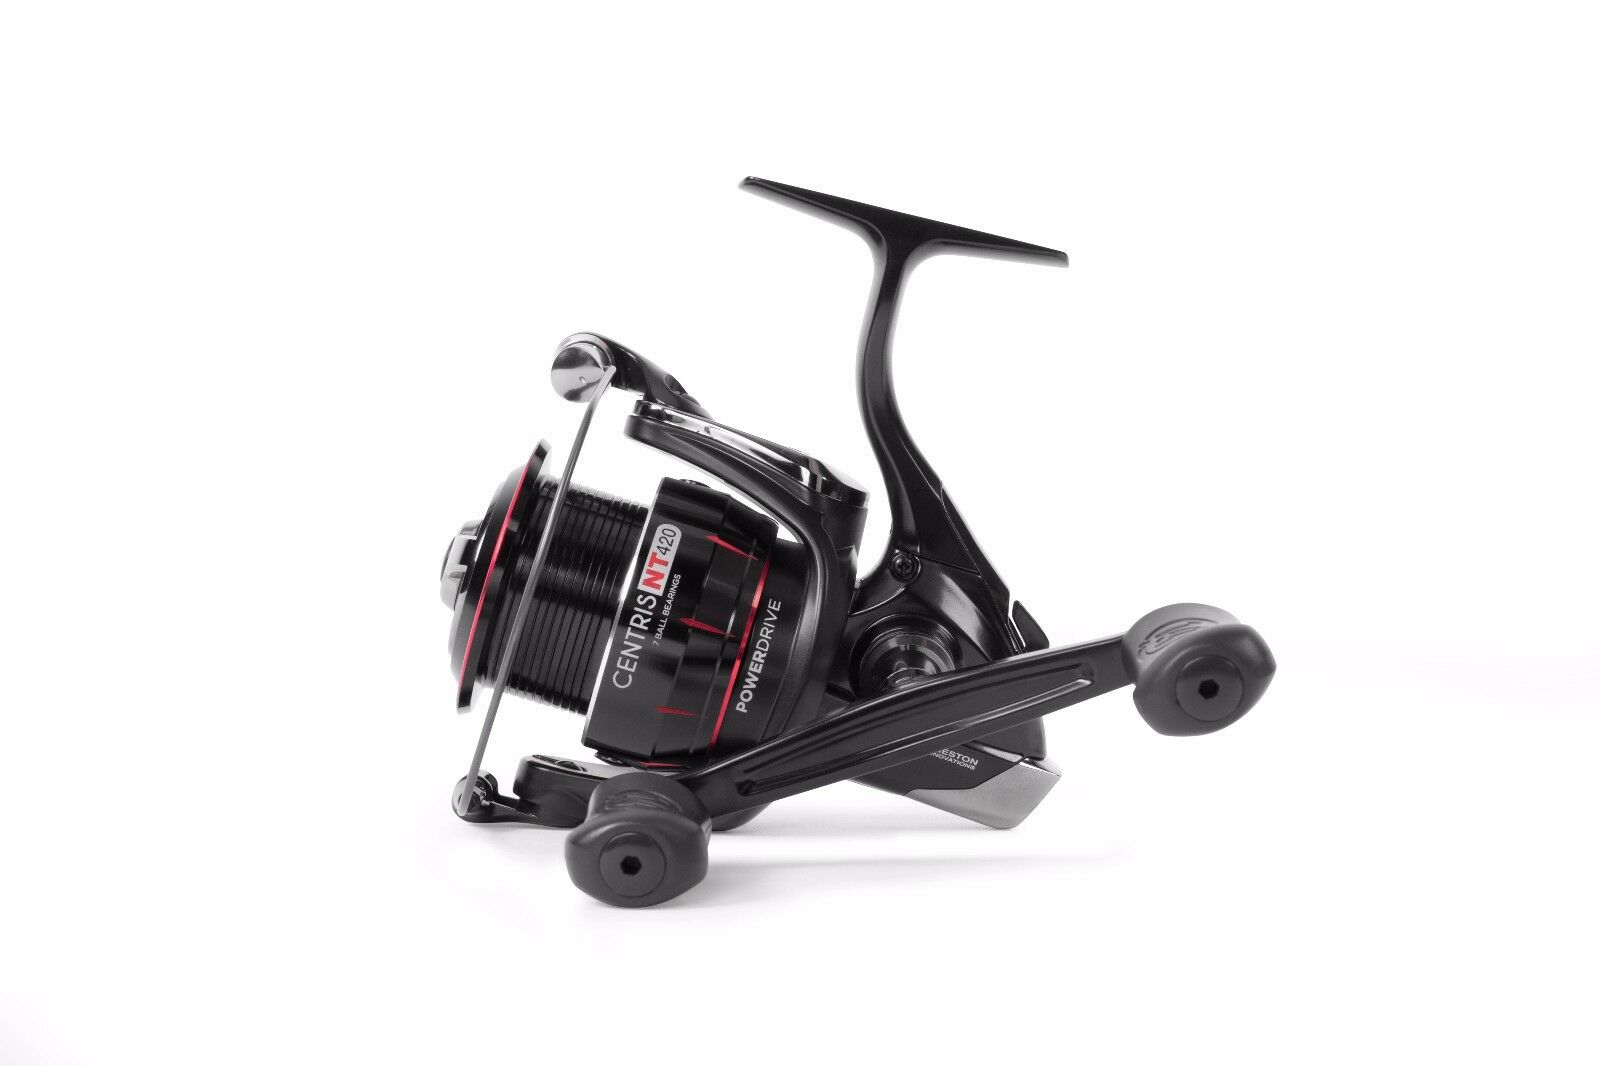 Preston Innovations Centris Reel NT 420 Reel Centris Brand New 2018- Free Delivery fbb7cc